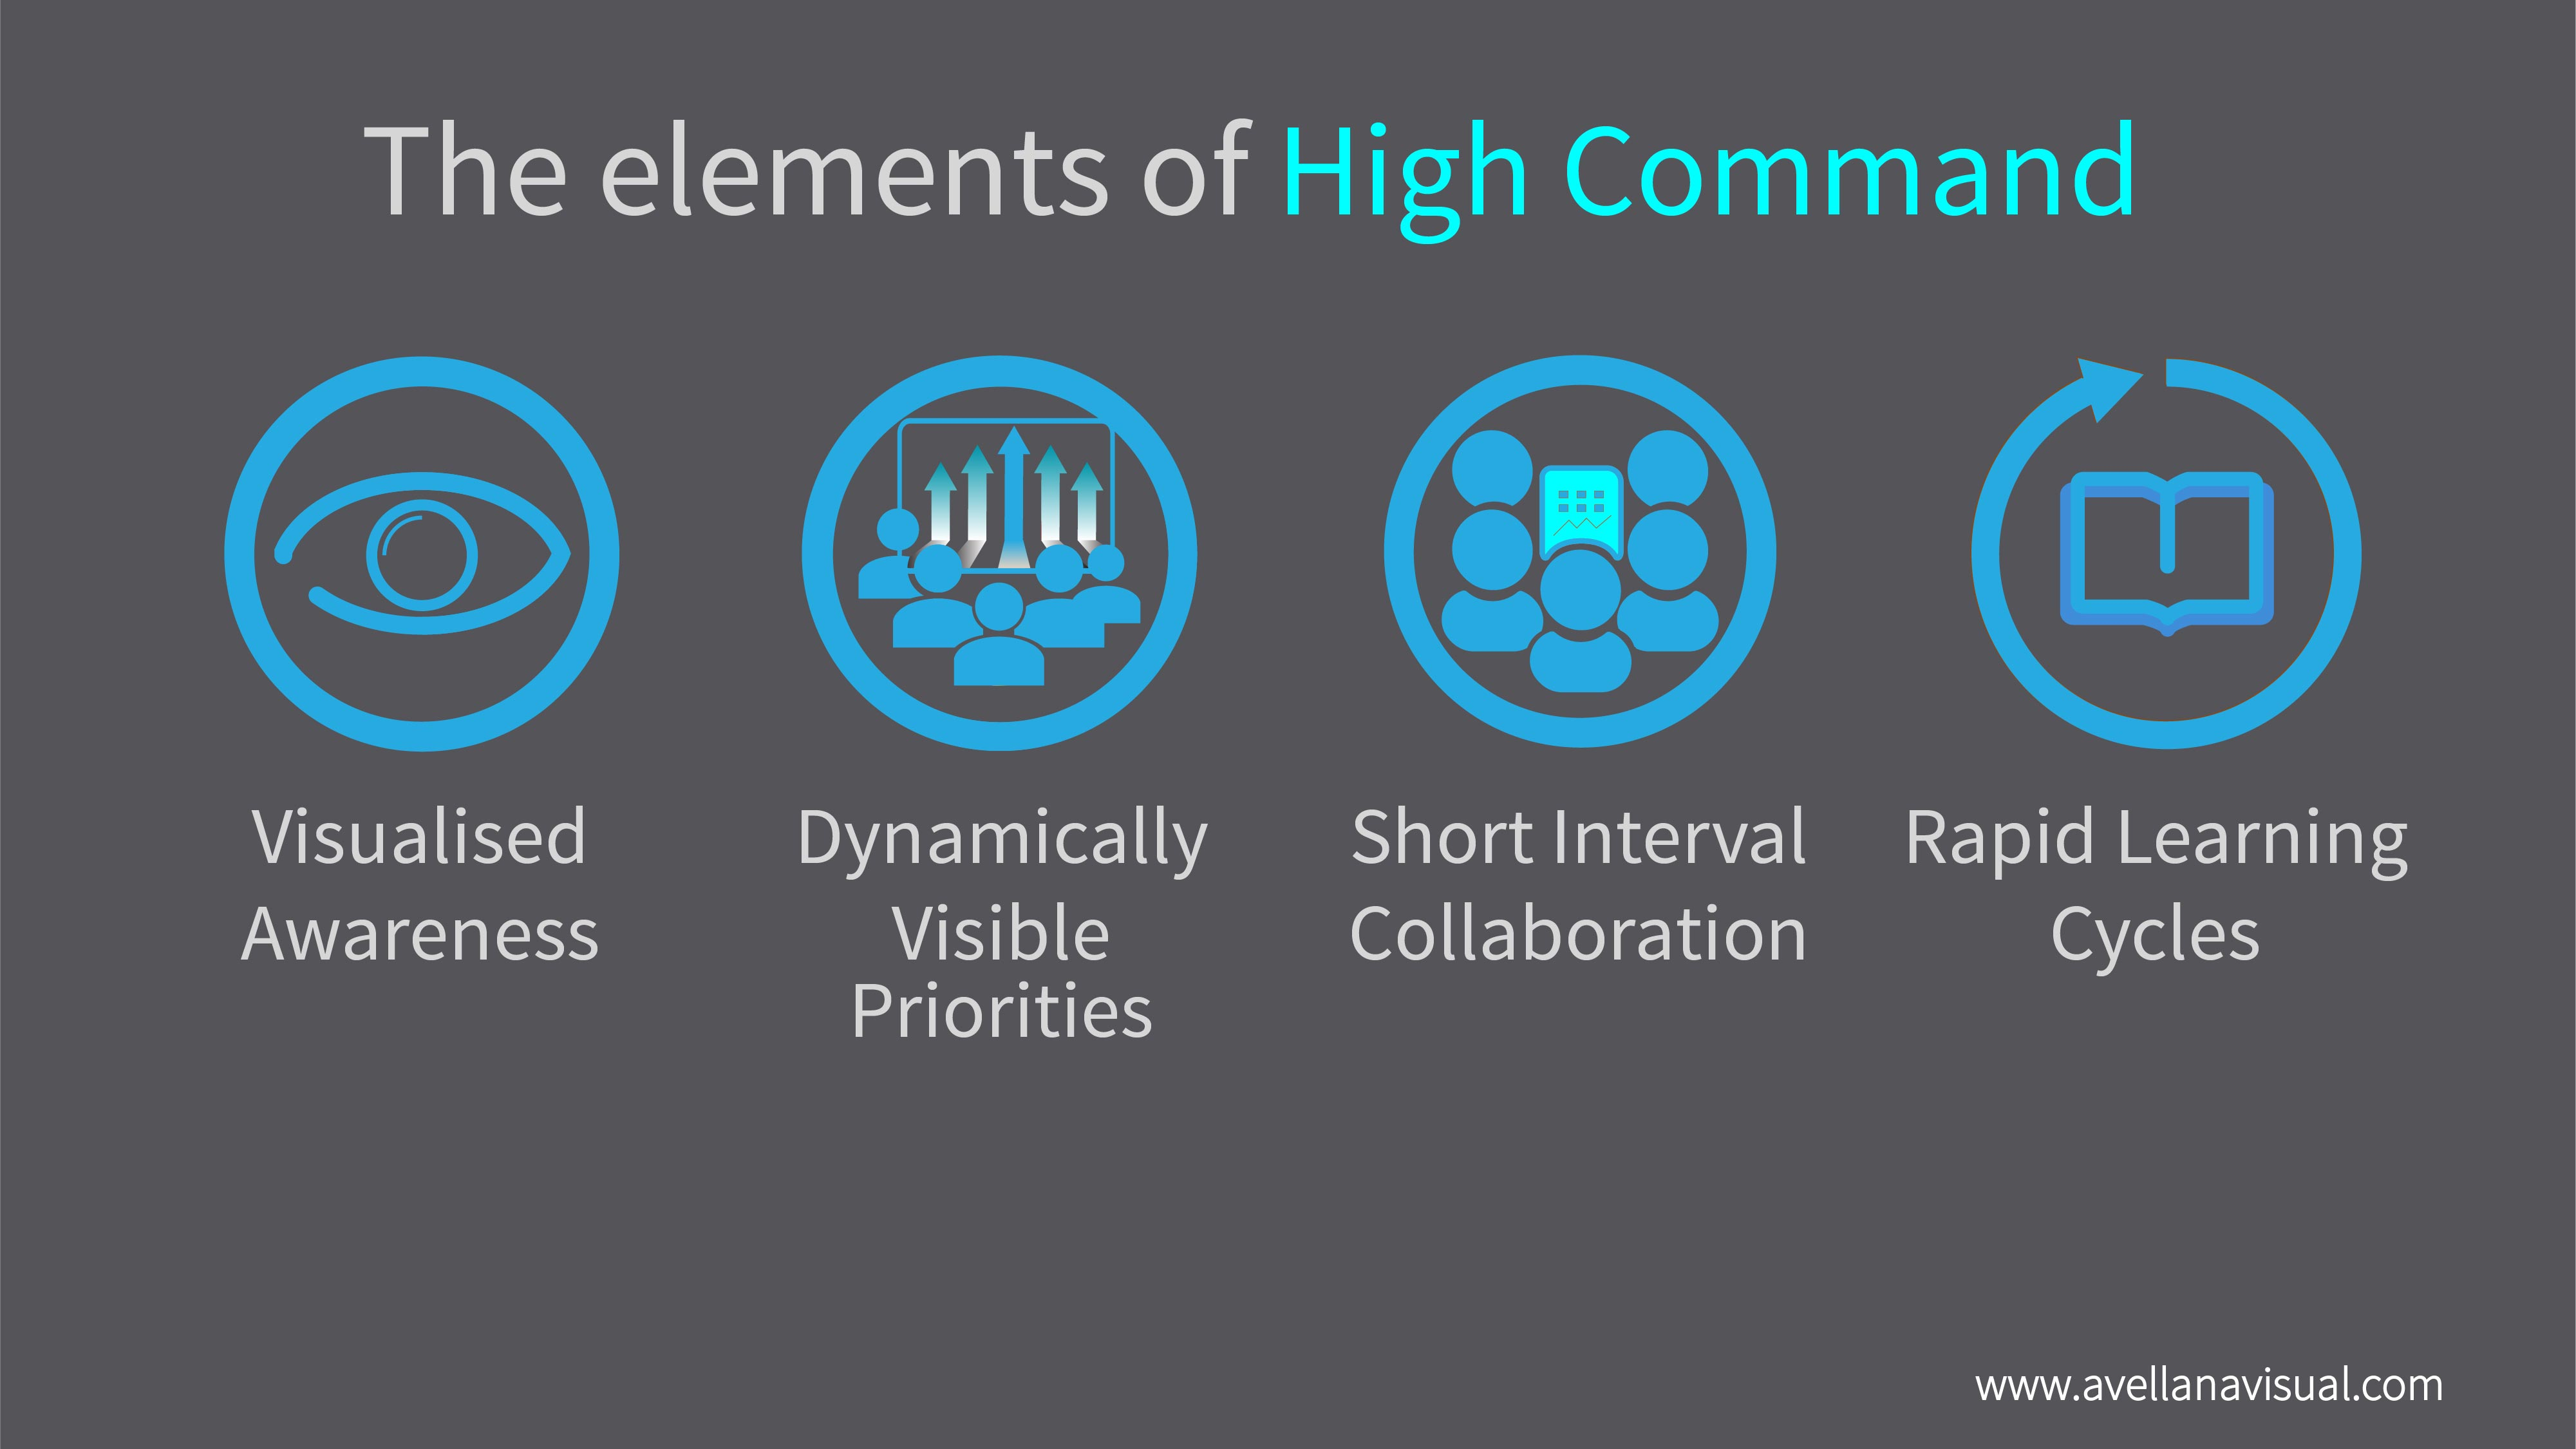 08 The elements of High Command